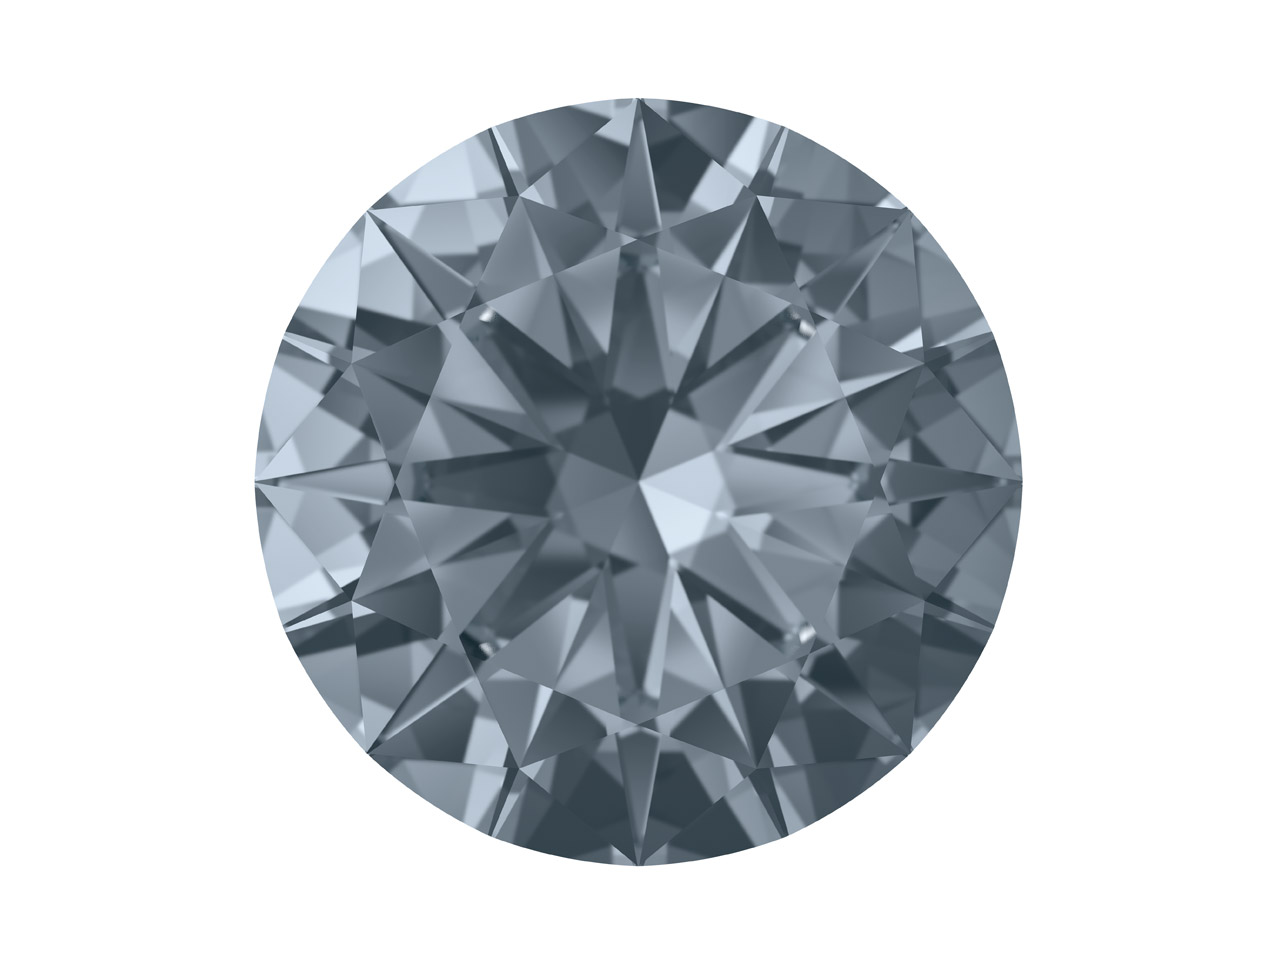 ecba7beb618f Swarovski Zirconia Nano Round Pure Brilliance Cut 1.5mm Ocean Grey Dark.  Click to see larger view